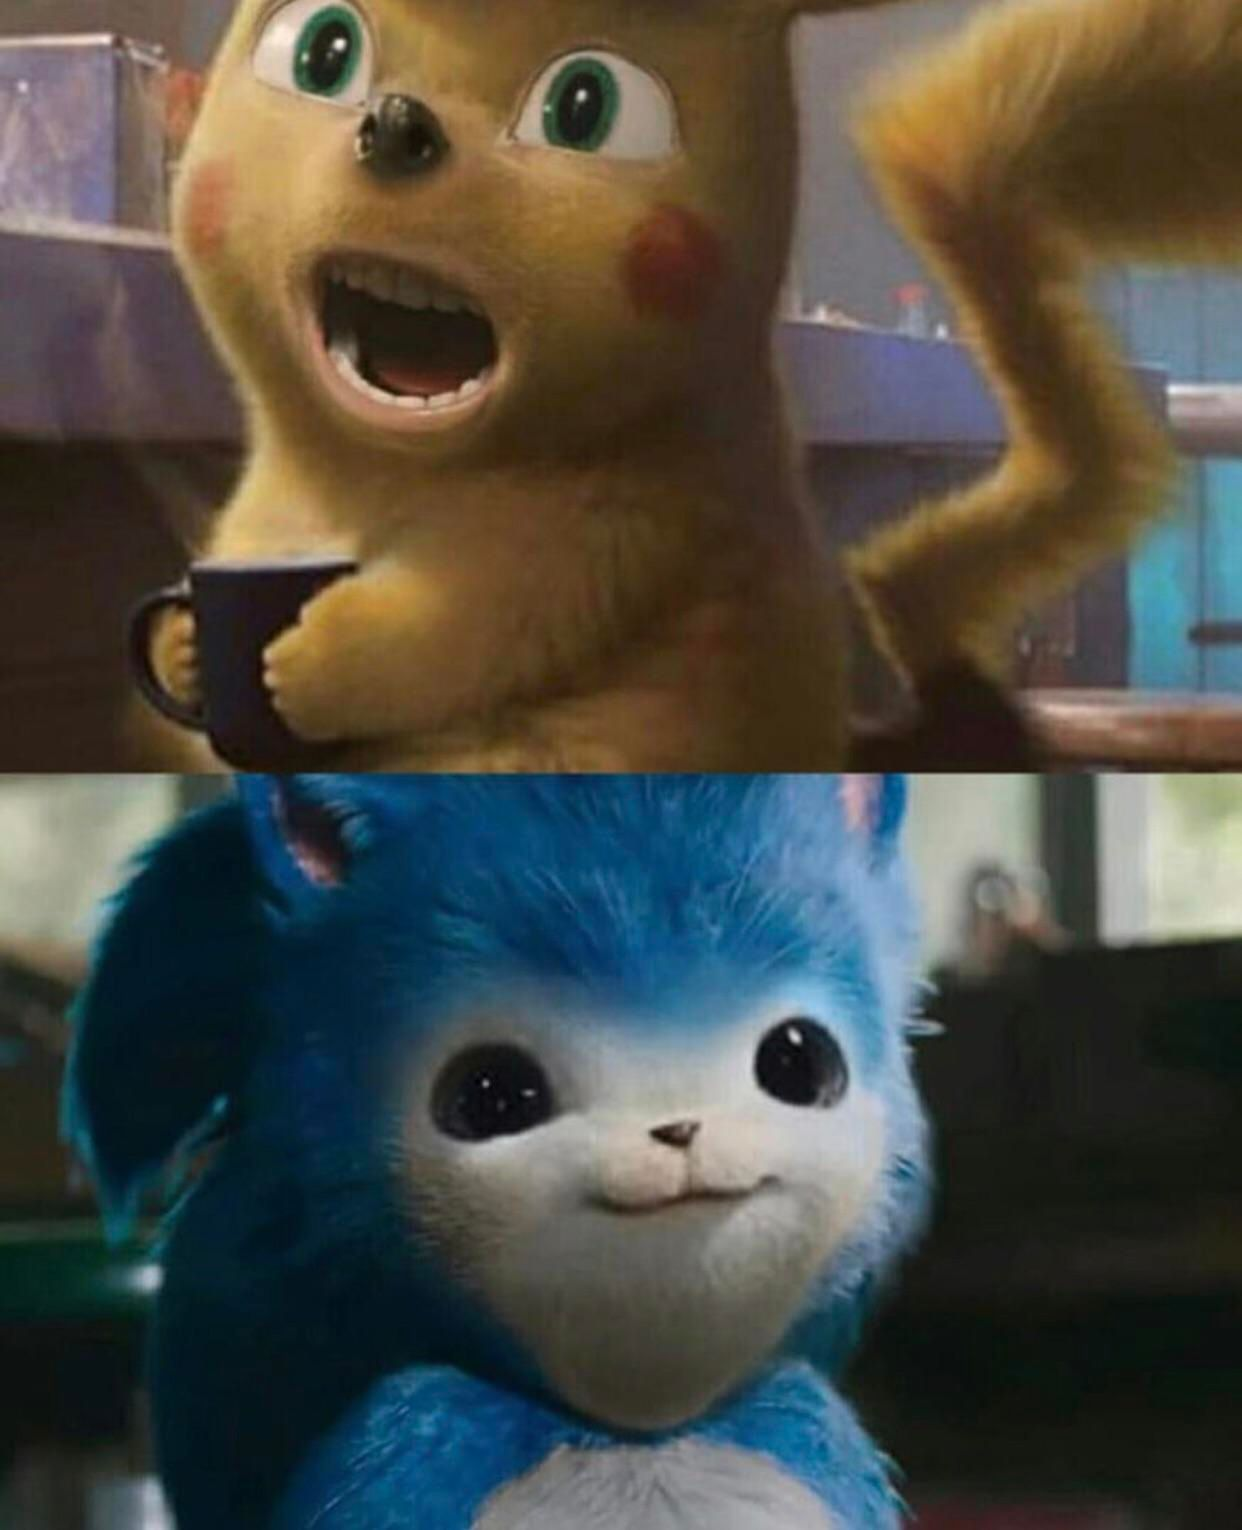 Detective Pikachu 9 Best Poke Memes From The Movie Screenrant